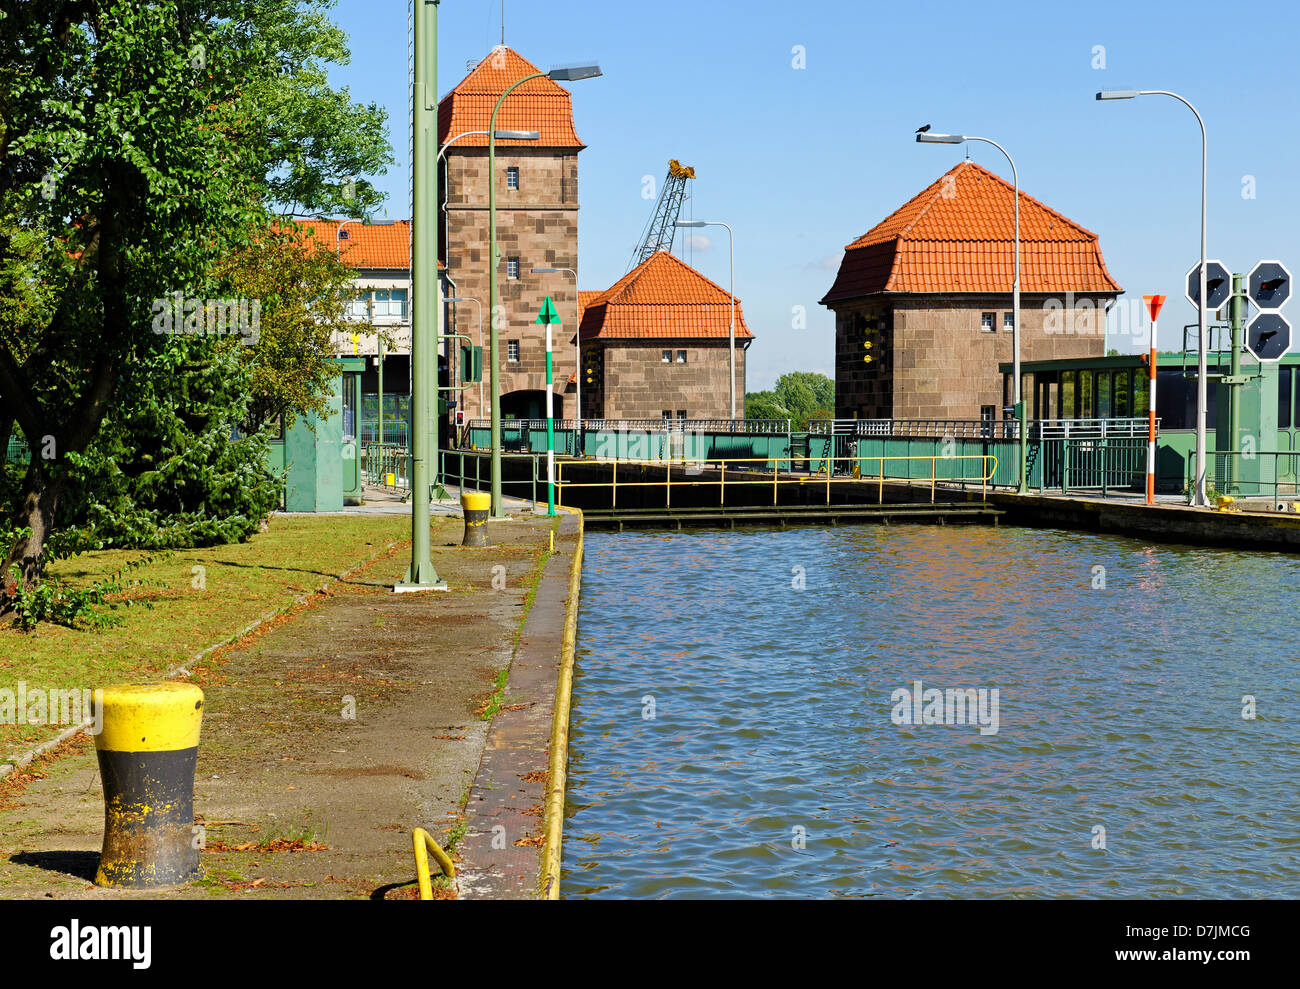 The sluice in Minden on the Weser, North Rhine-Westphalia, Germany - Stock Image